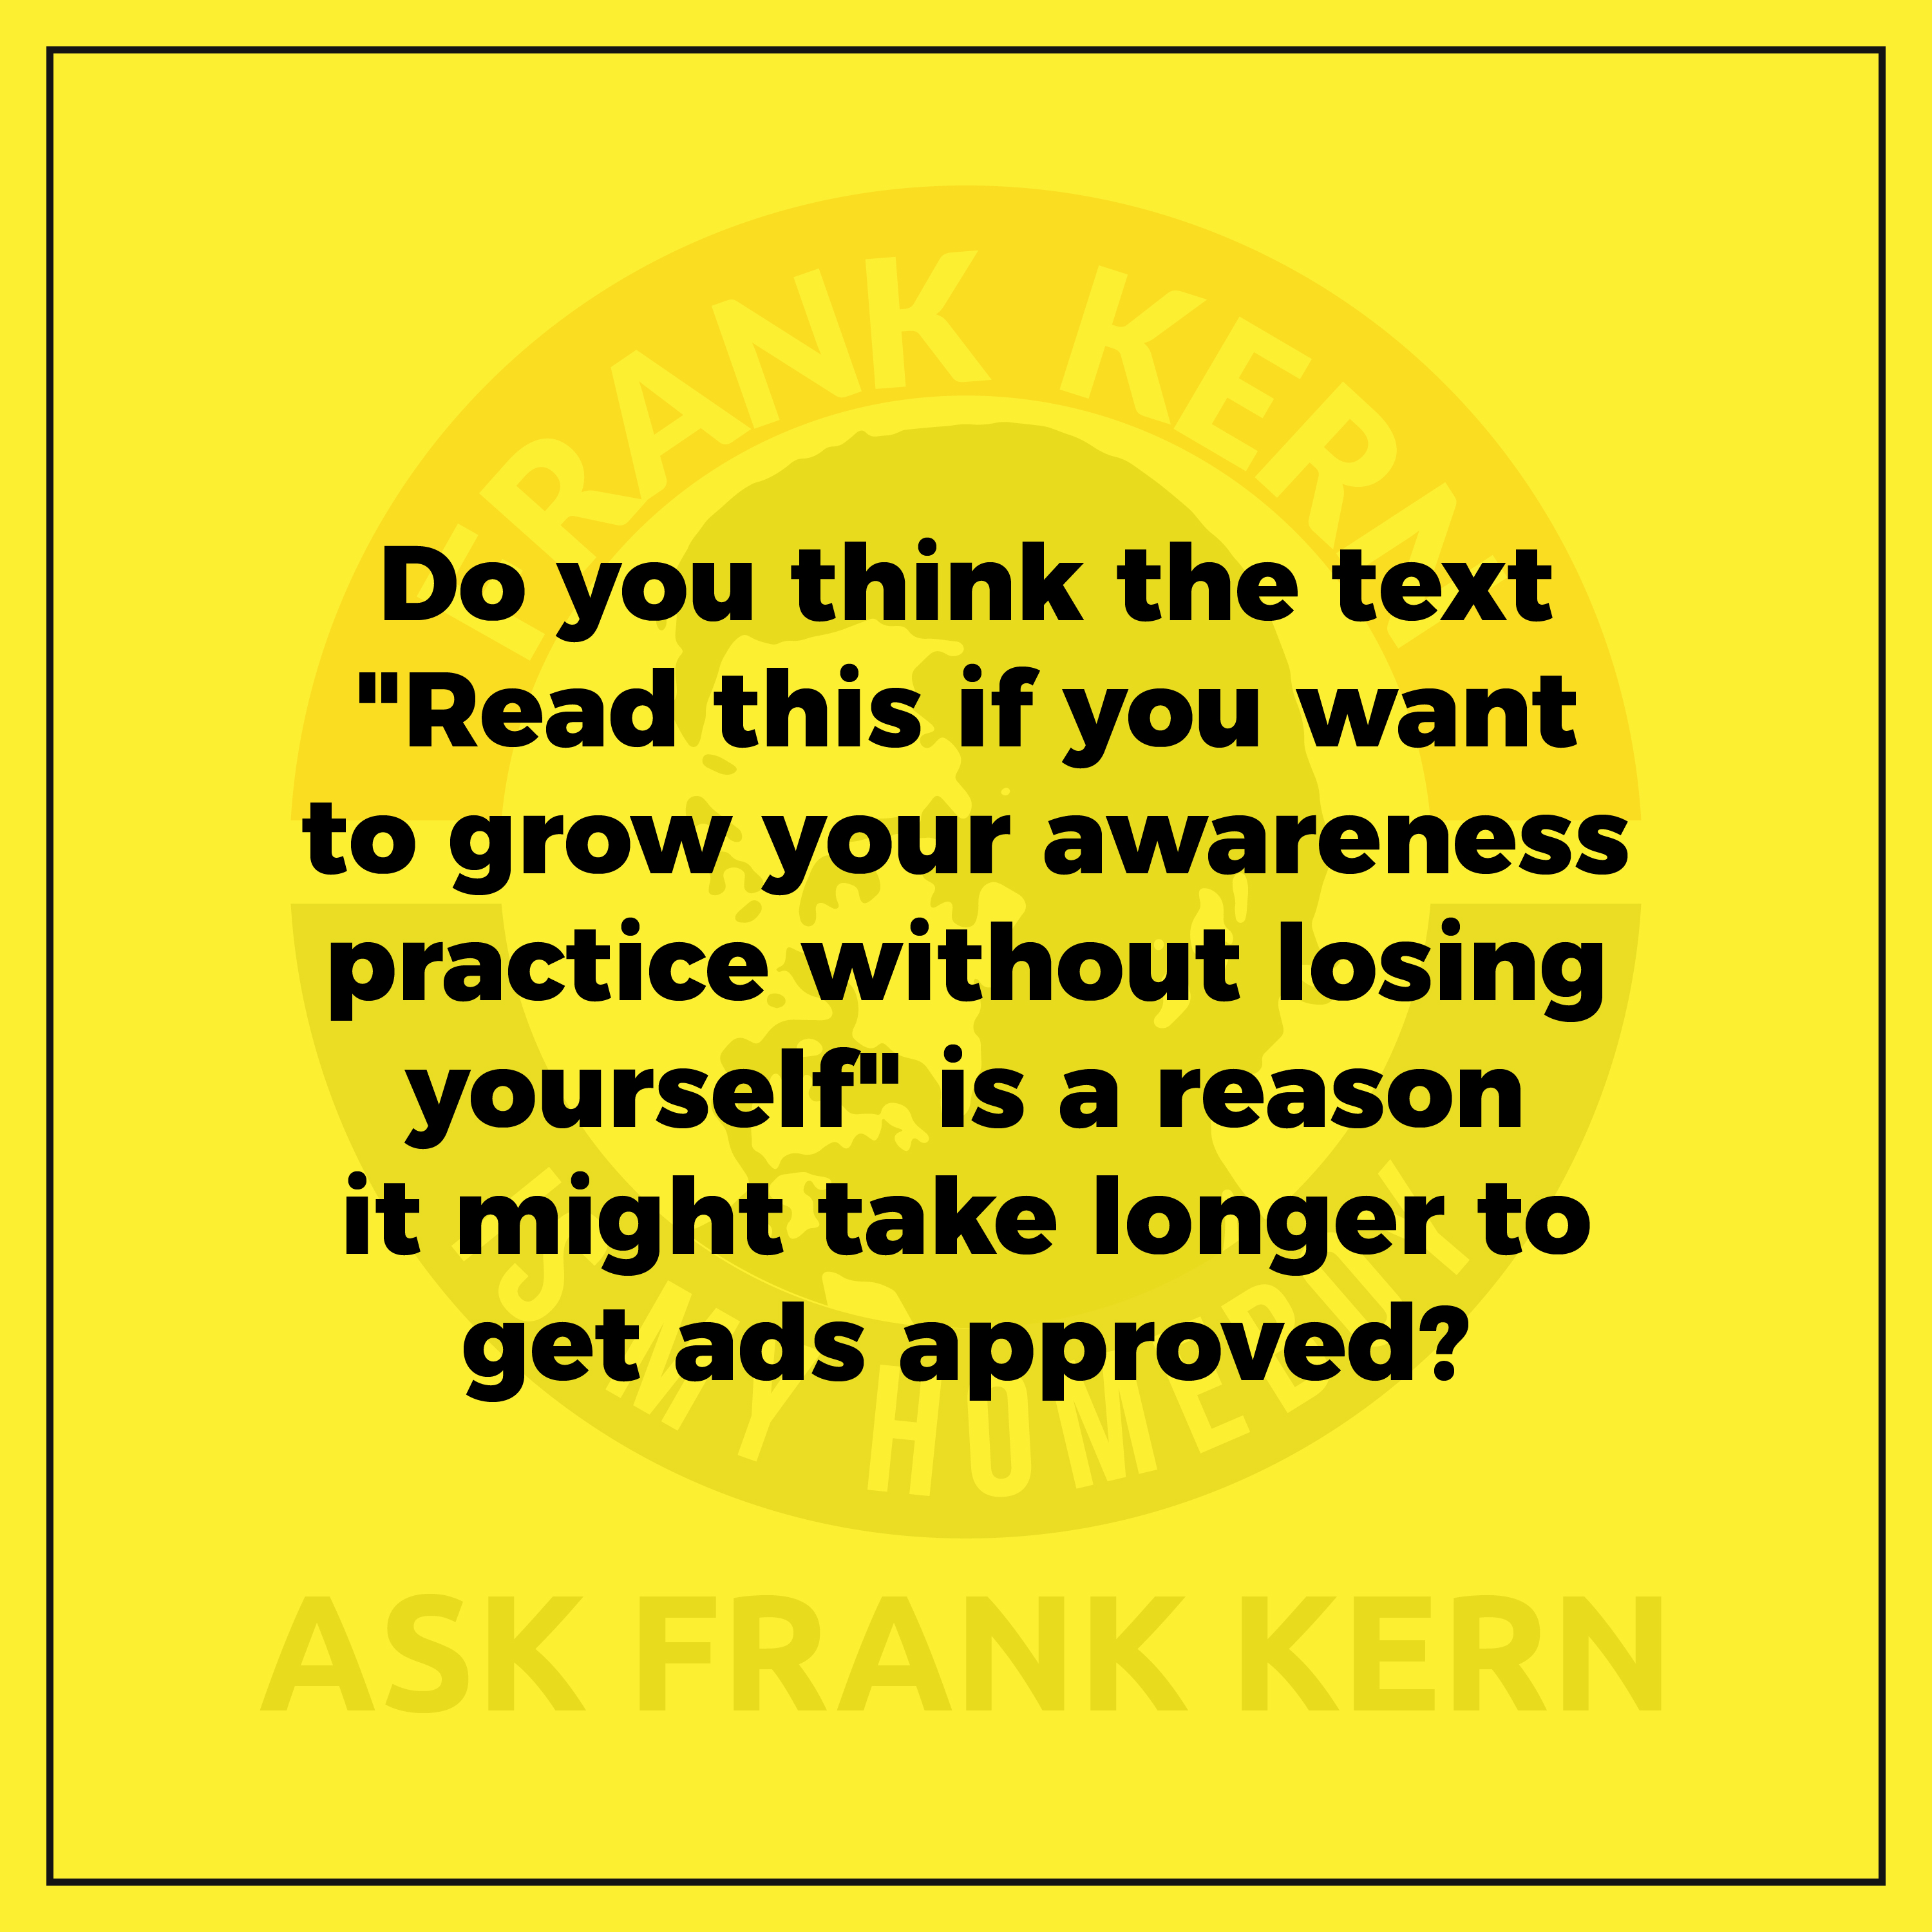 """Do you think the text """"Read this if you want to grow your awareness practice without losing yourself"""" is a reason it might take longer to get ads approved?"""